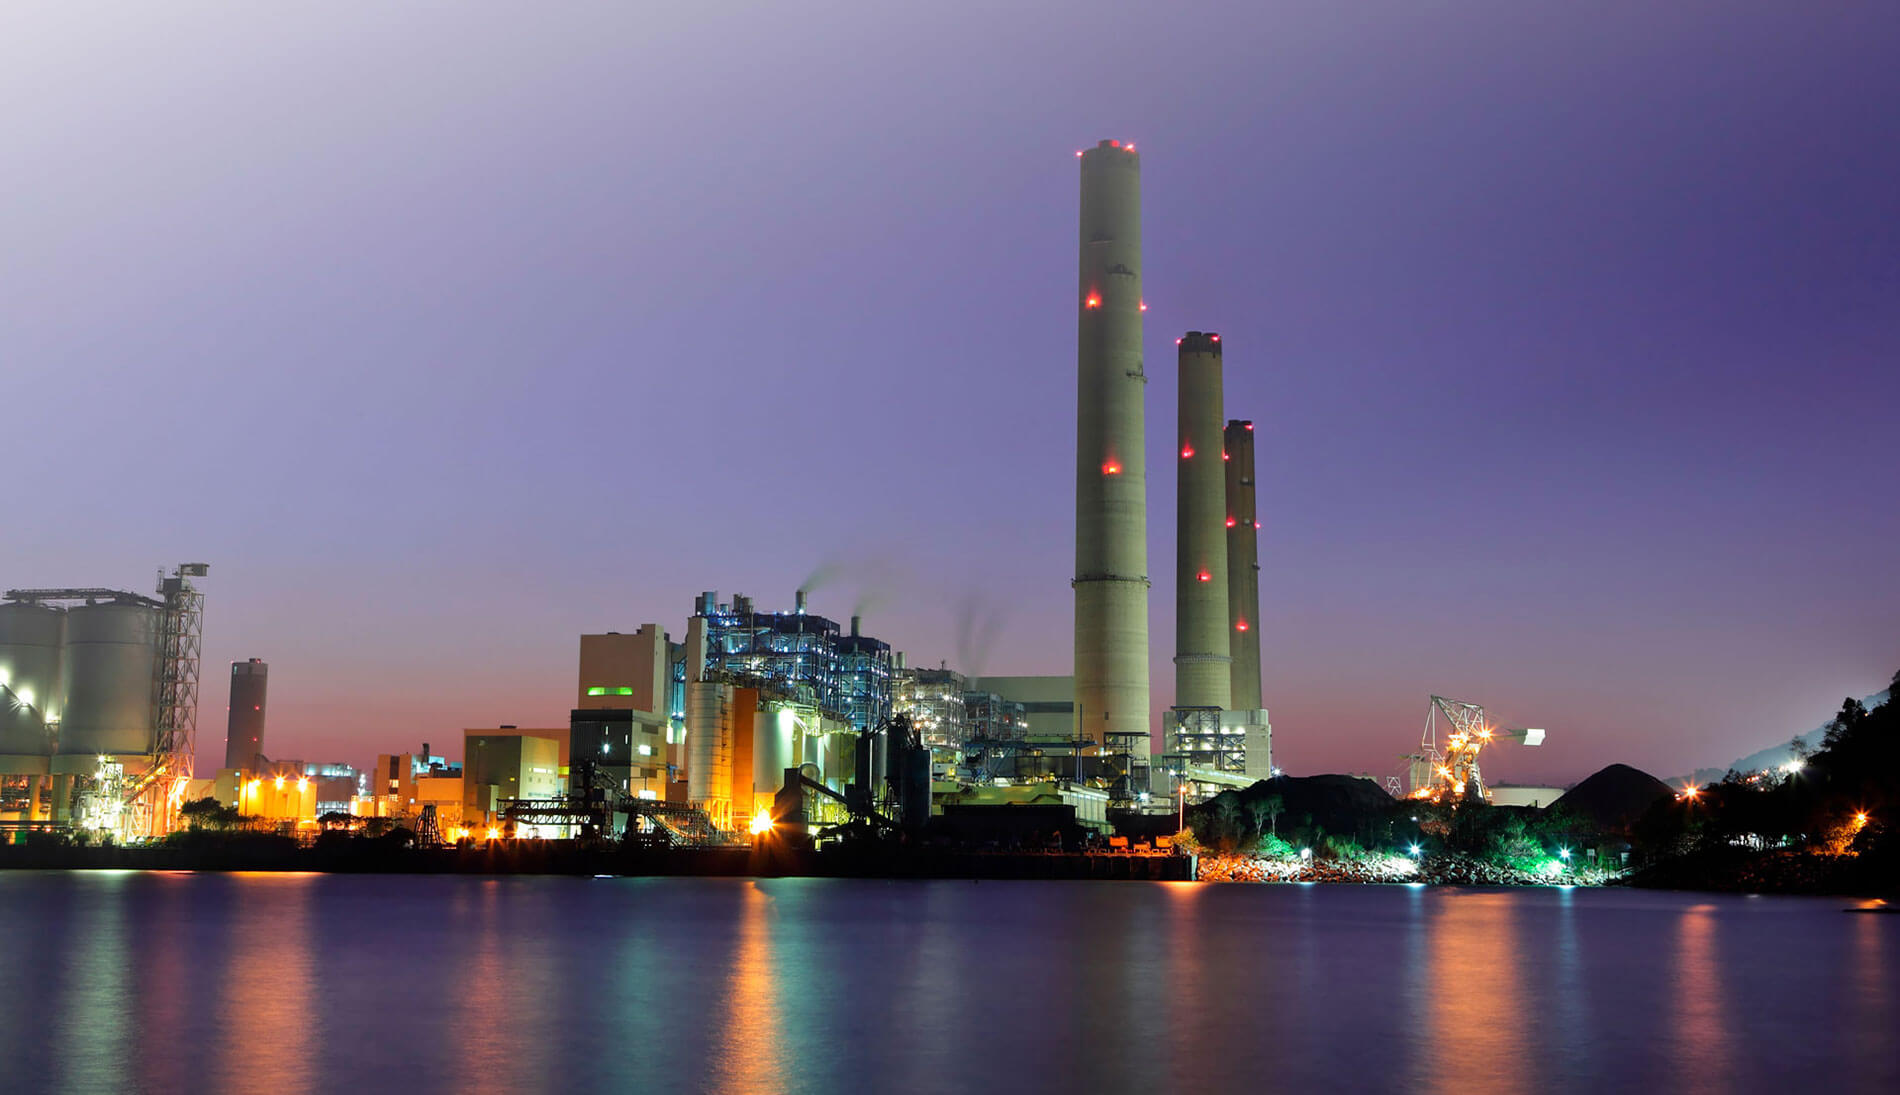 Conventional Coal Power Plant